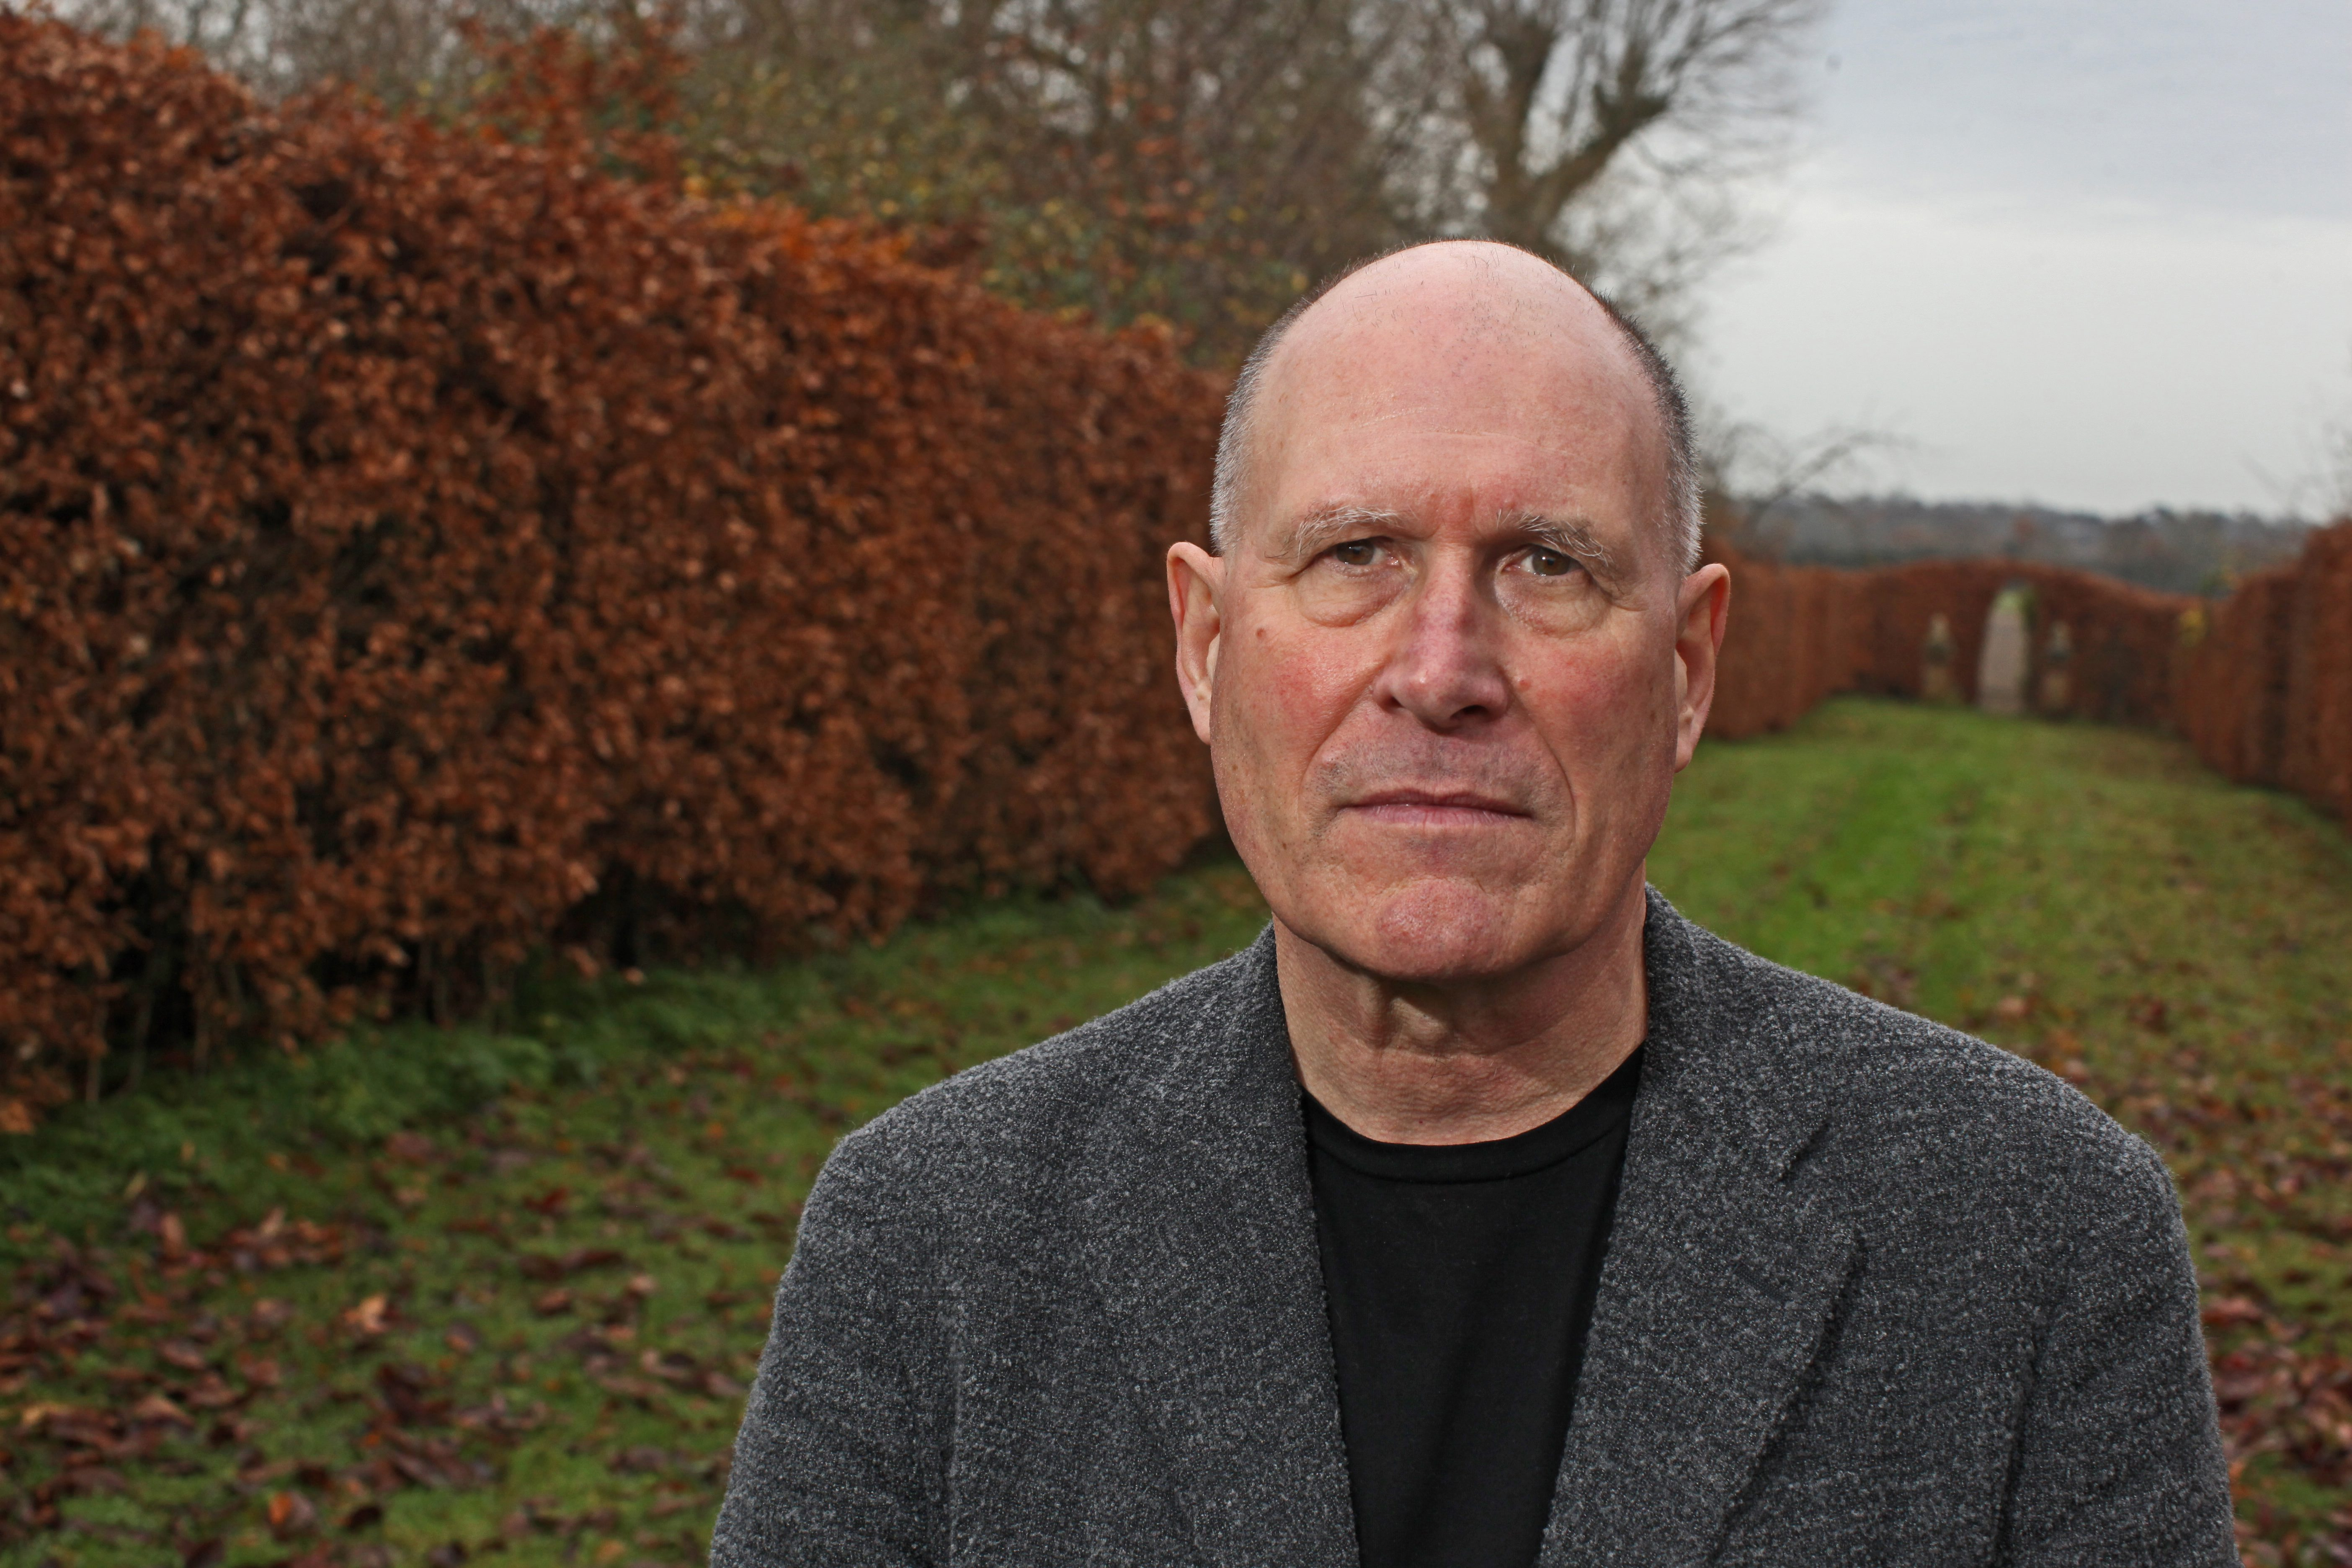 British playwright, novelist and screenwriter William Nicholson at his home near Lewes, East Sussex, 13th December 2012.